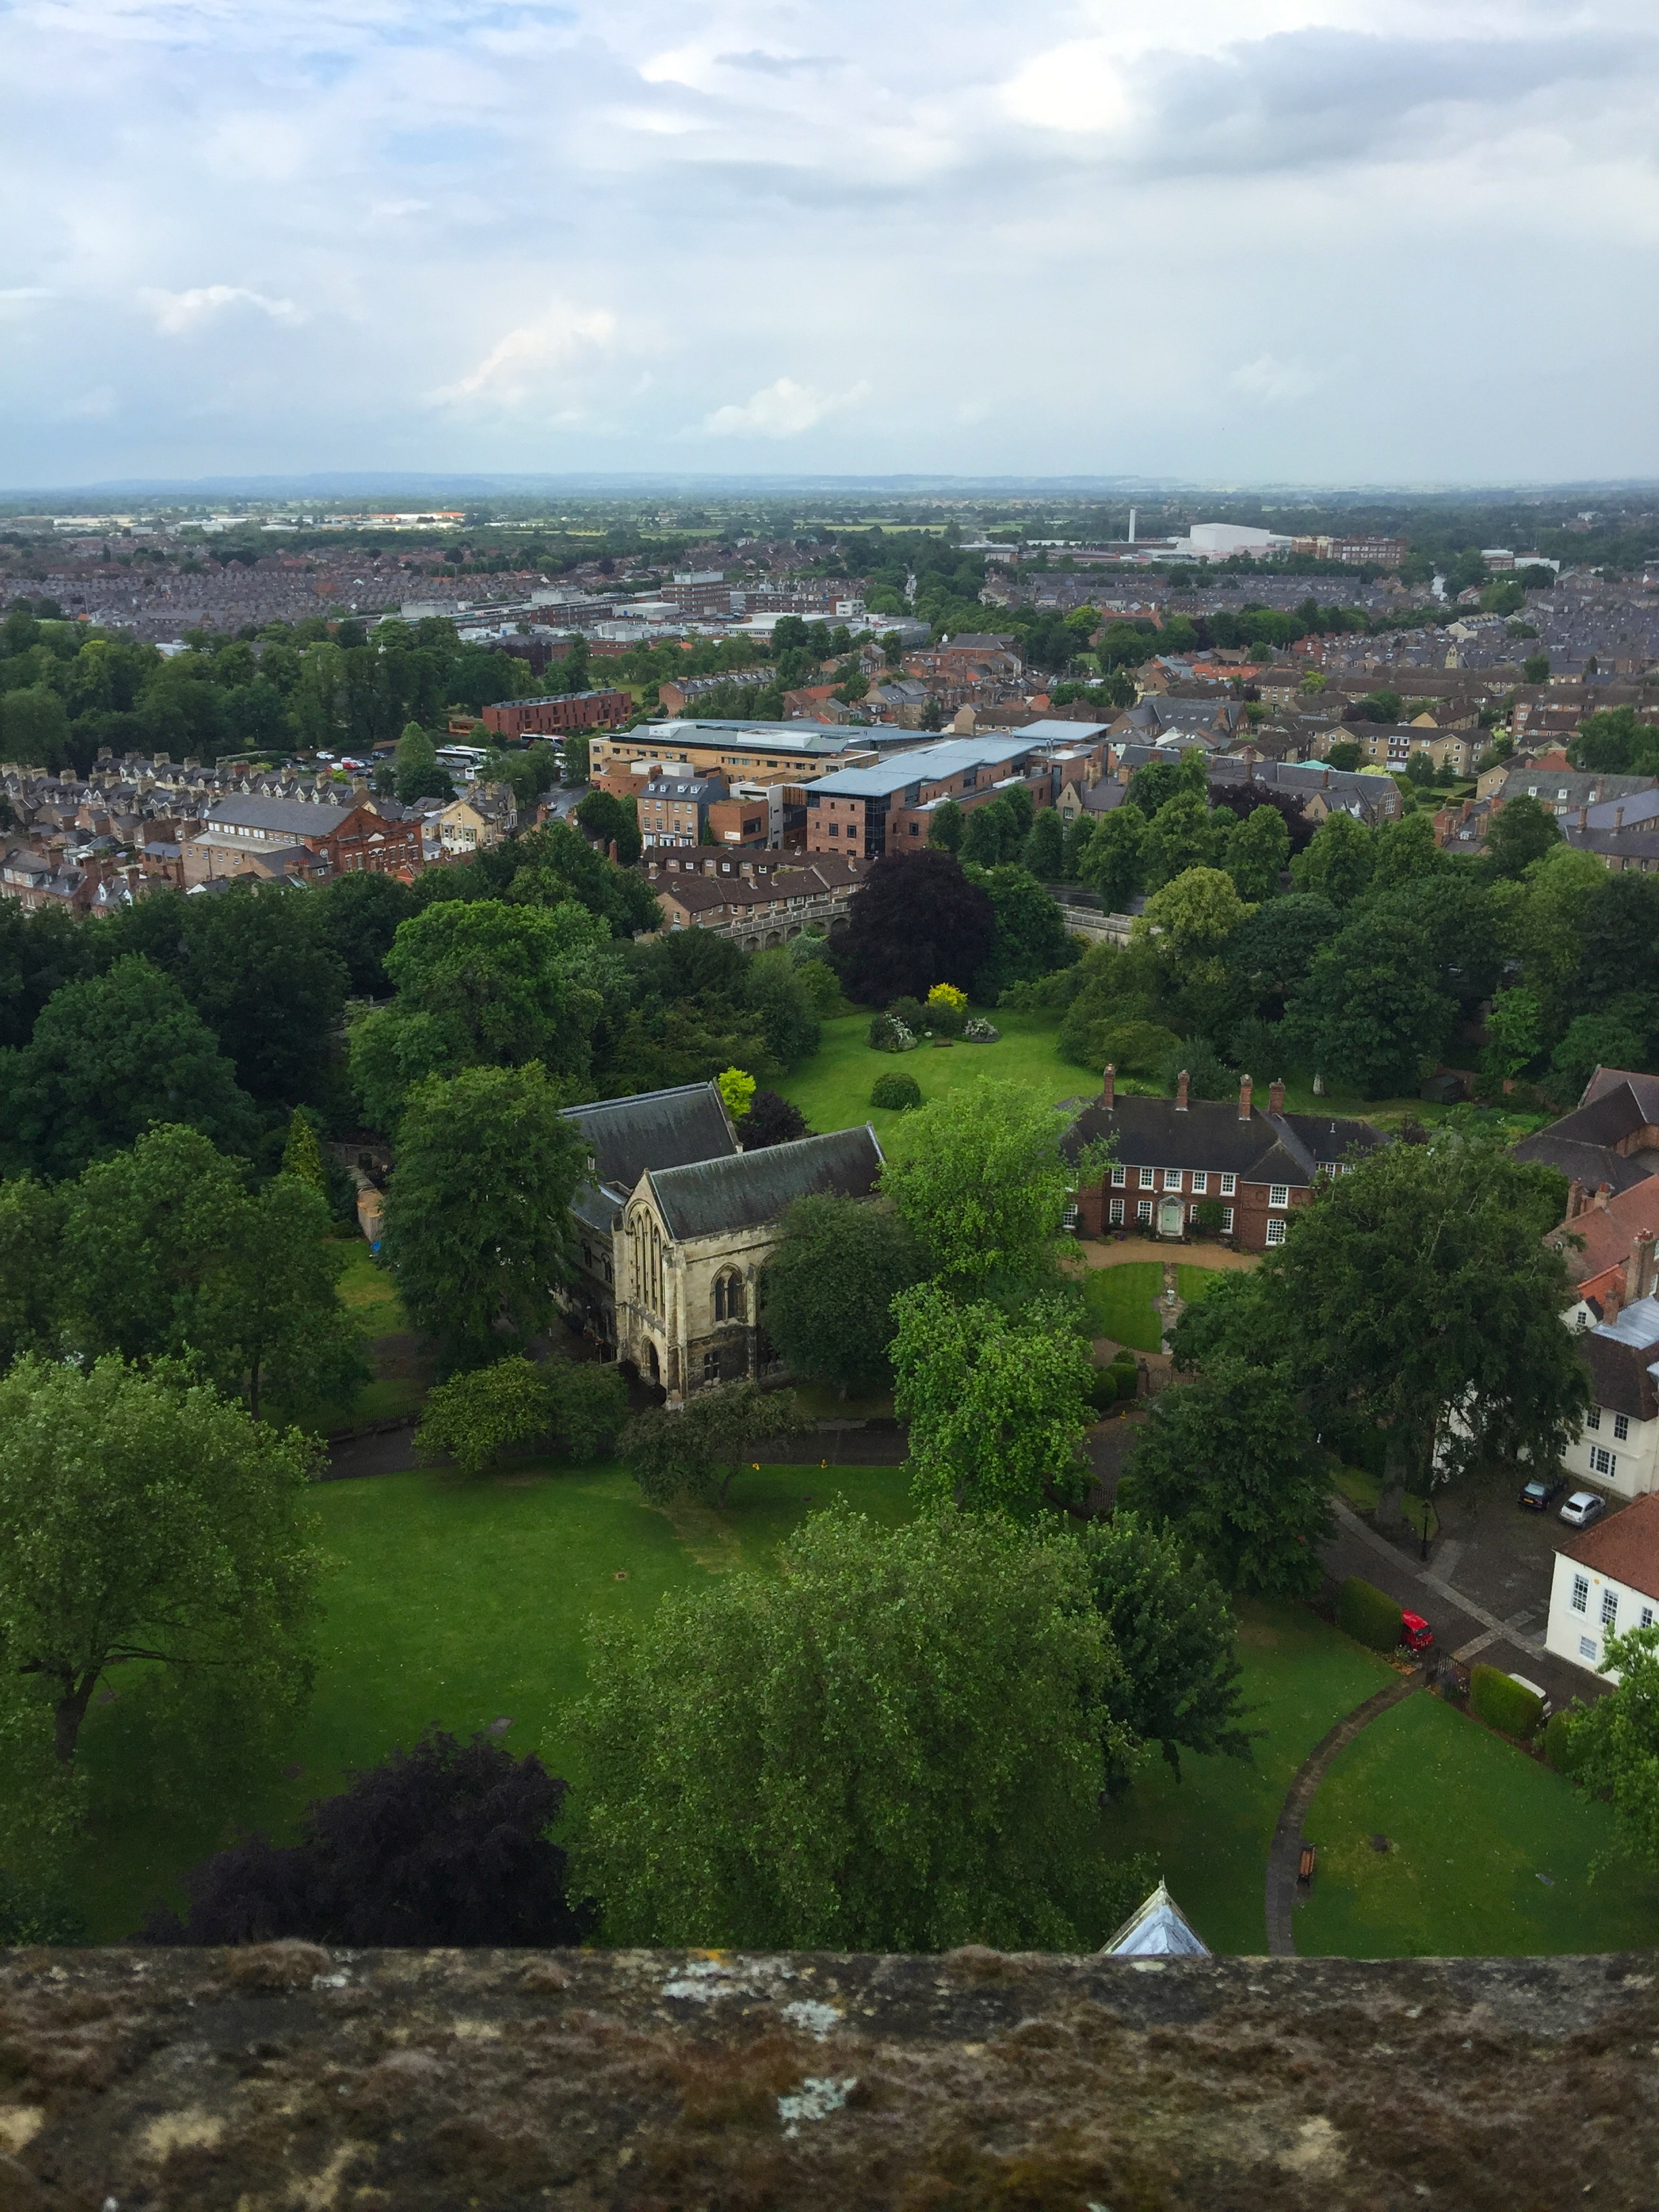 Views from the Minster